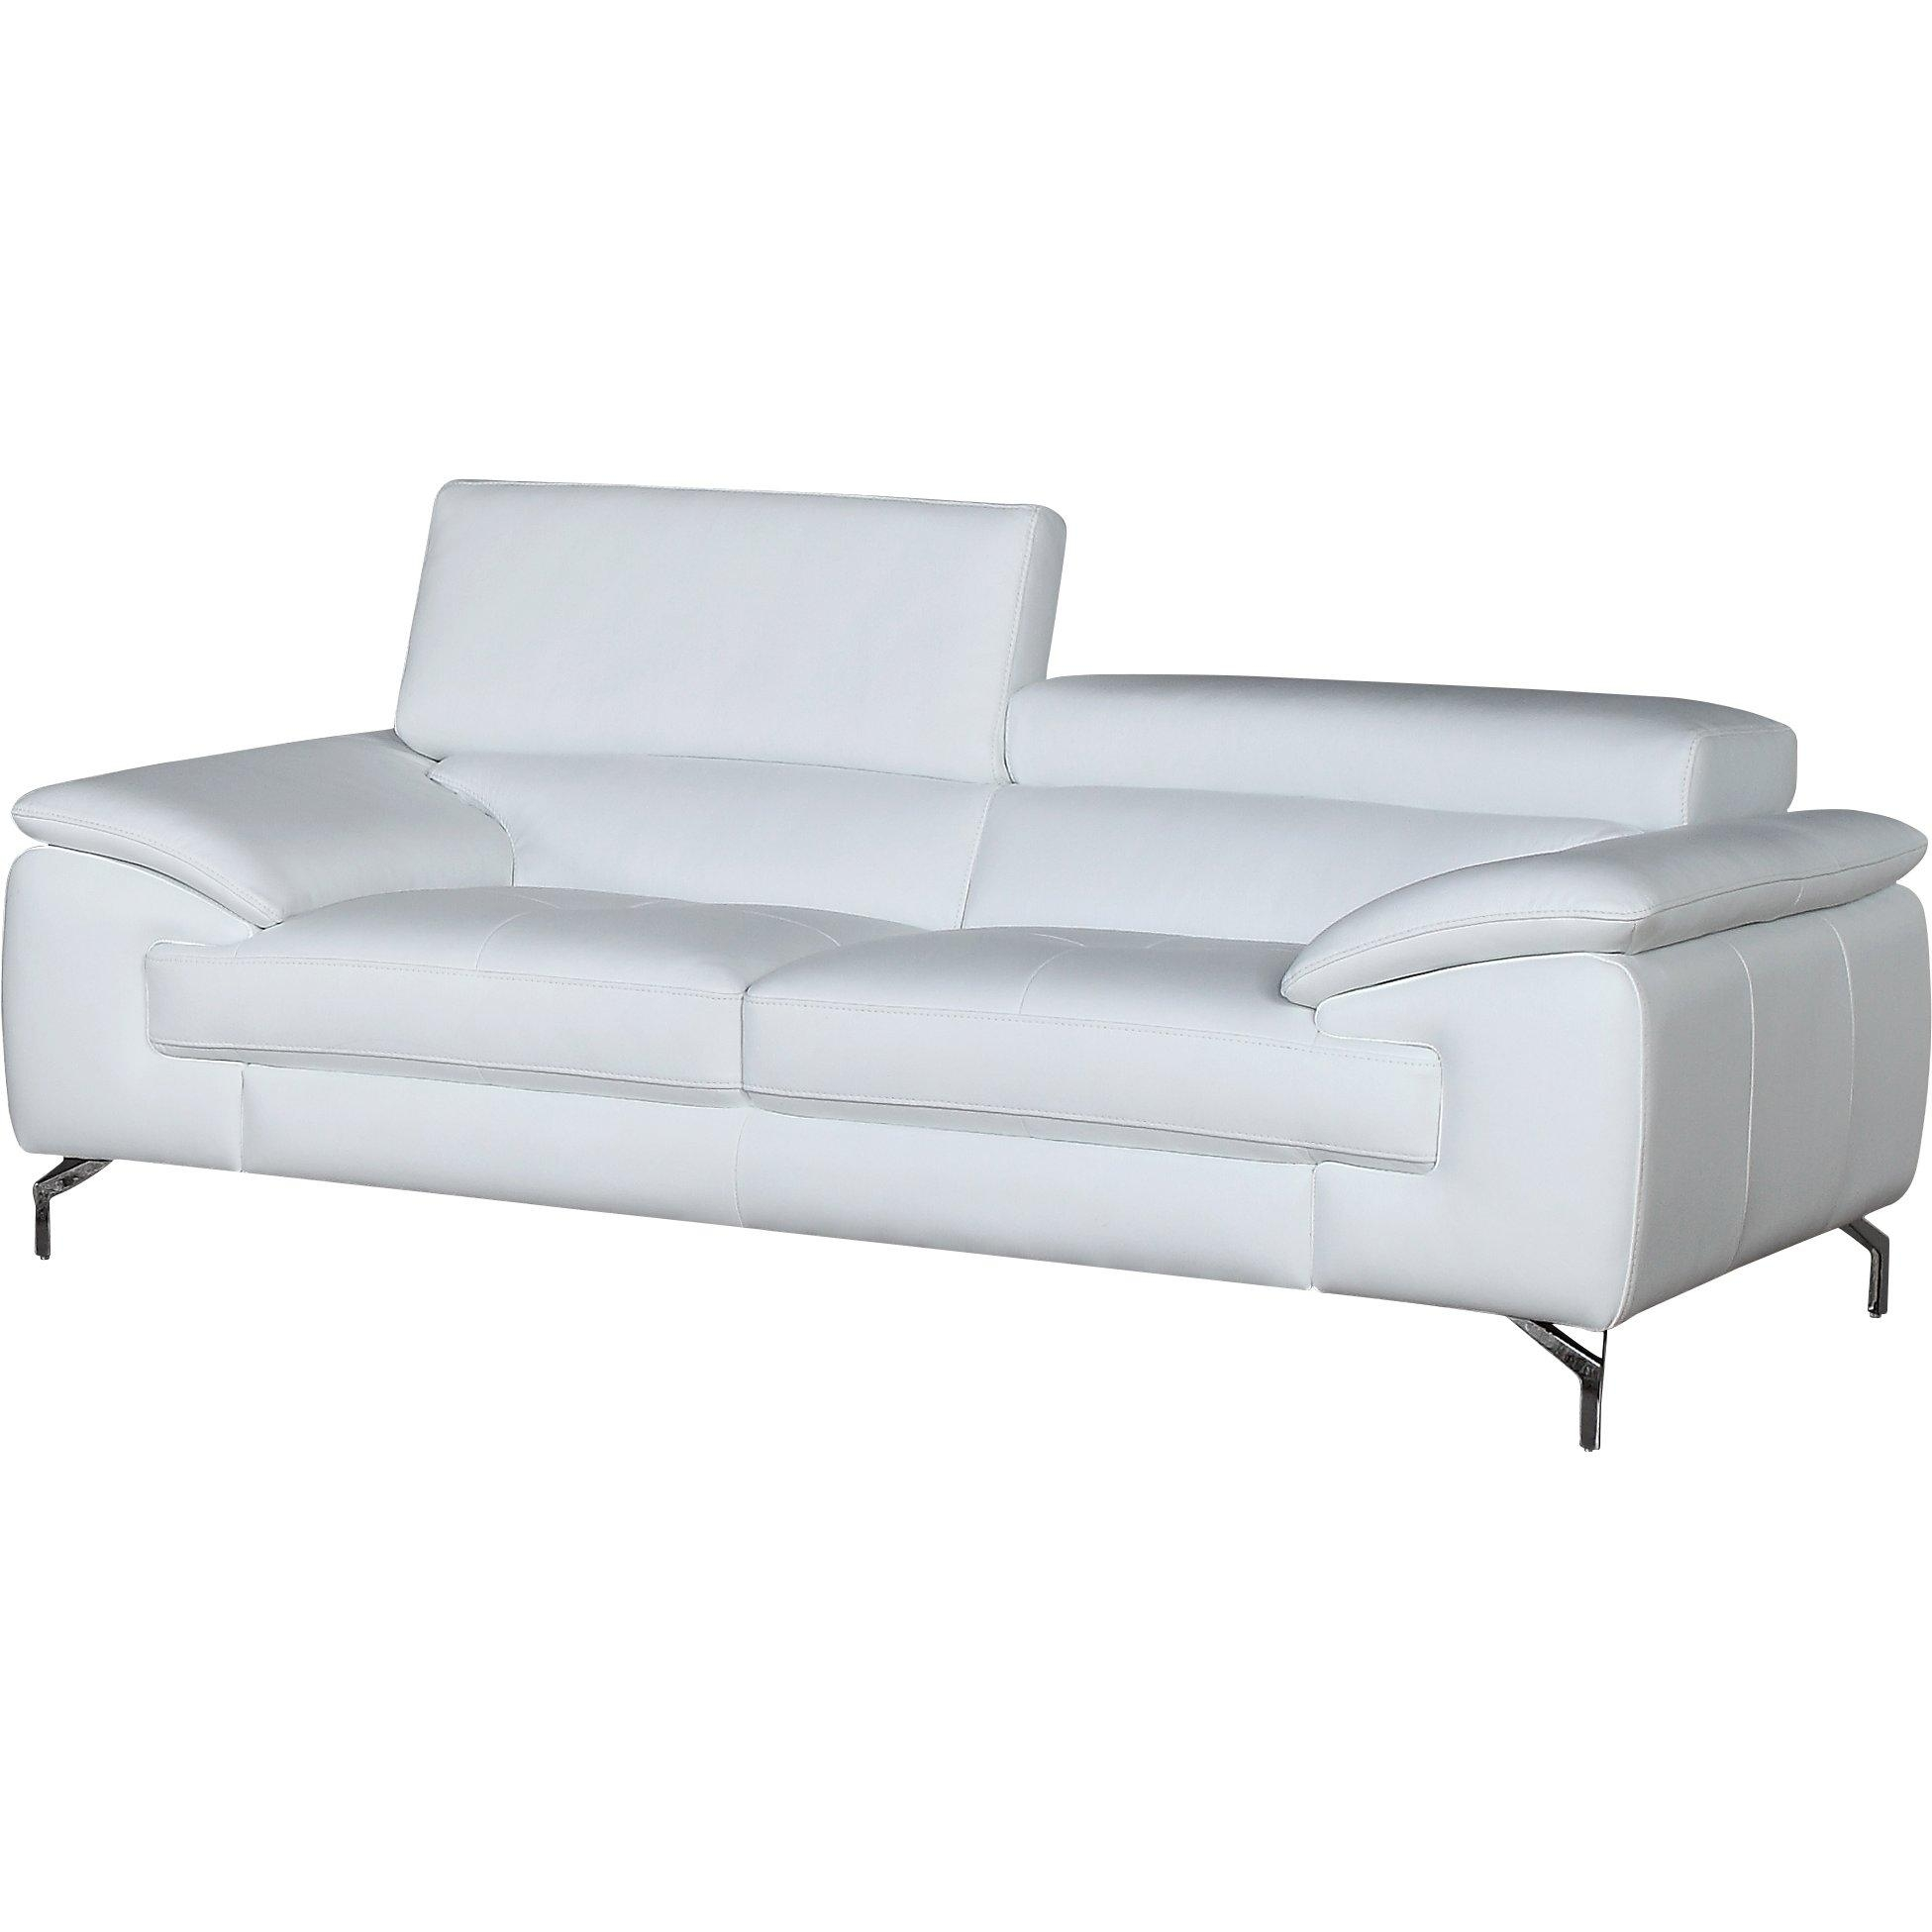 Wade Logan Gideon Italian Leather Sofa & Reviews | Wayfair Supply With Regard To Italian Leather Sofas (Image 20 of 20)